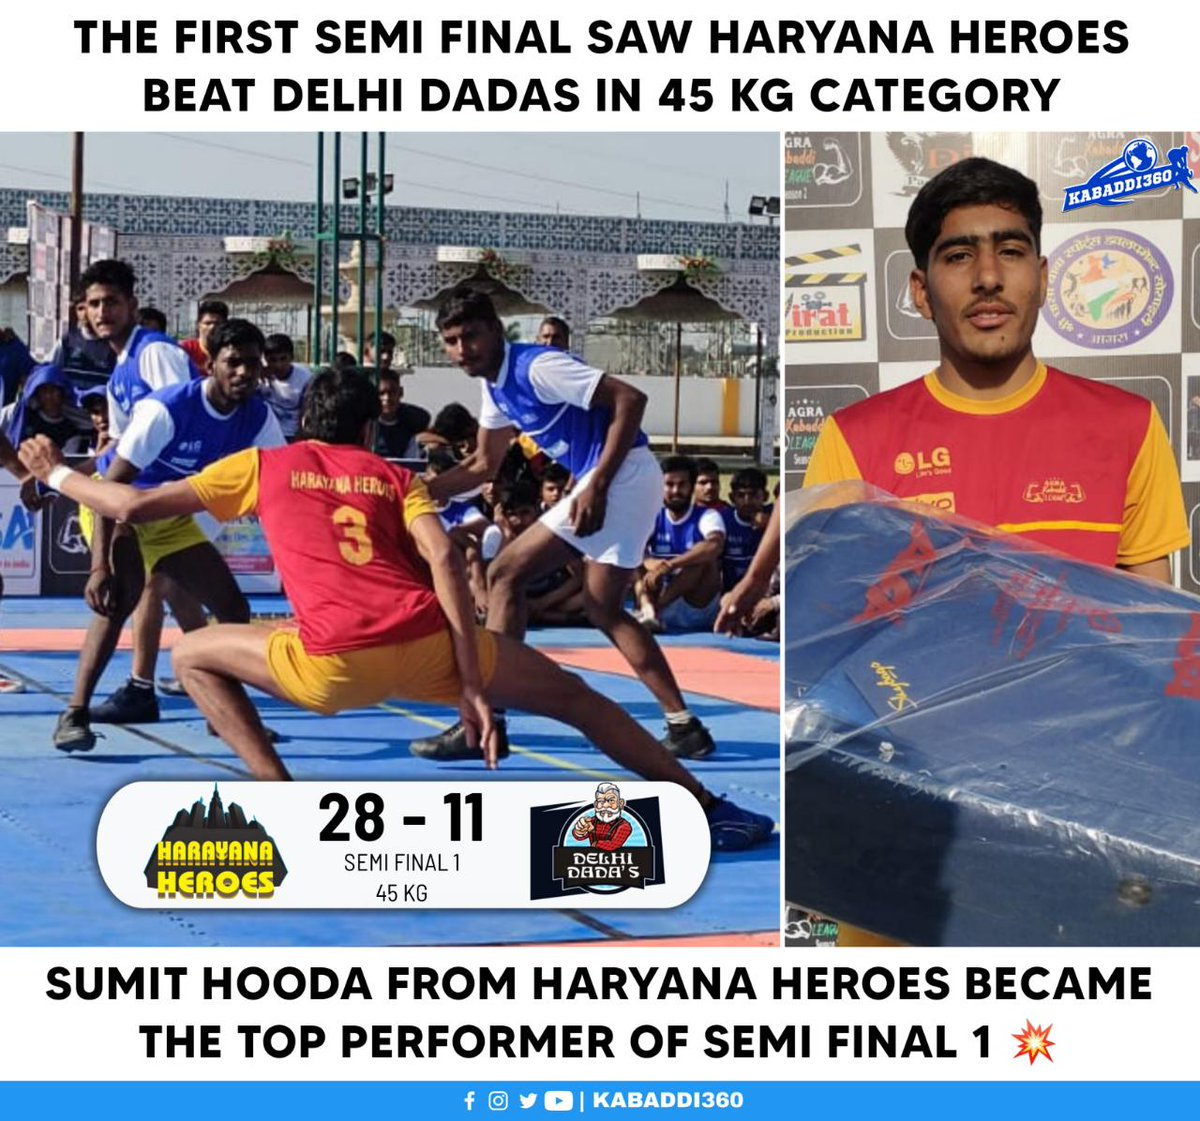 Haryana Heroes became the first team to qualify for 45 kg final 🔥 Watch it LIVE on YouTube 📱  #AgraKabaddiLeague #KabaddiResults #Kabaddi360